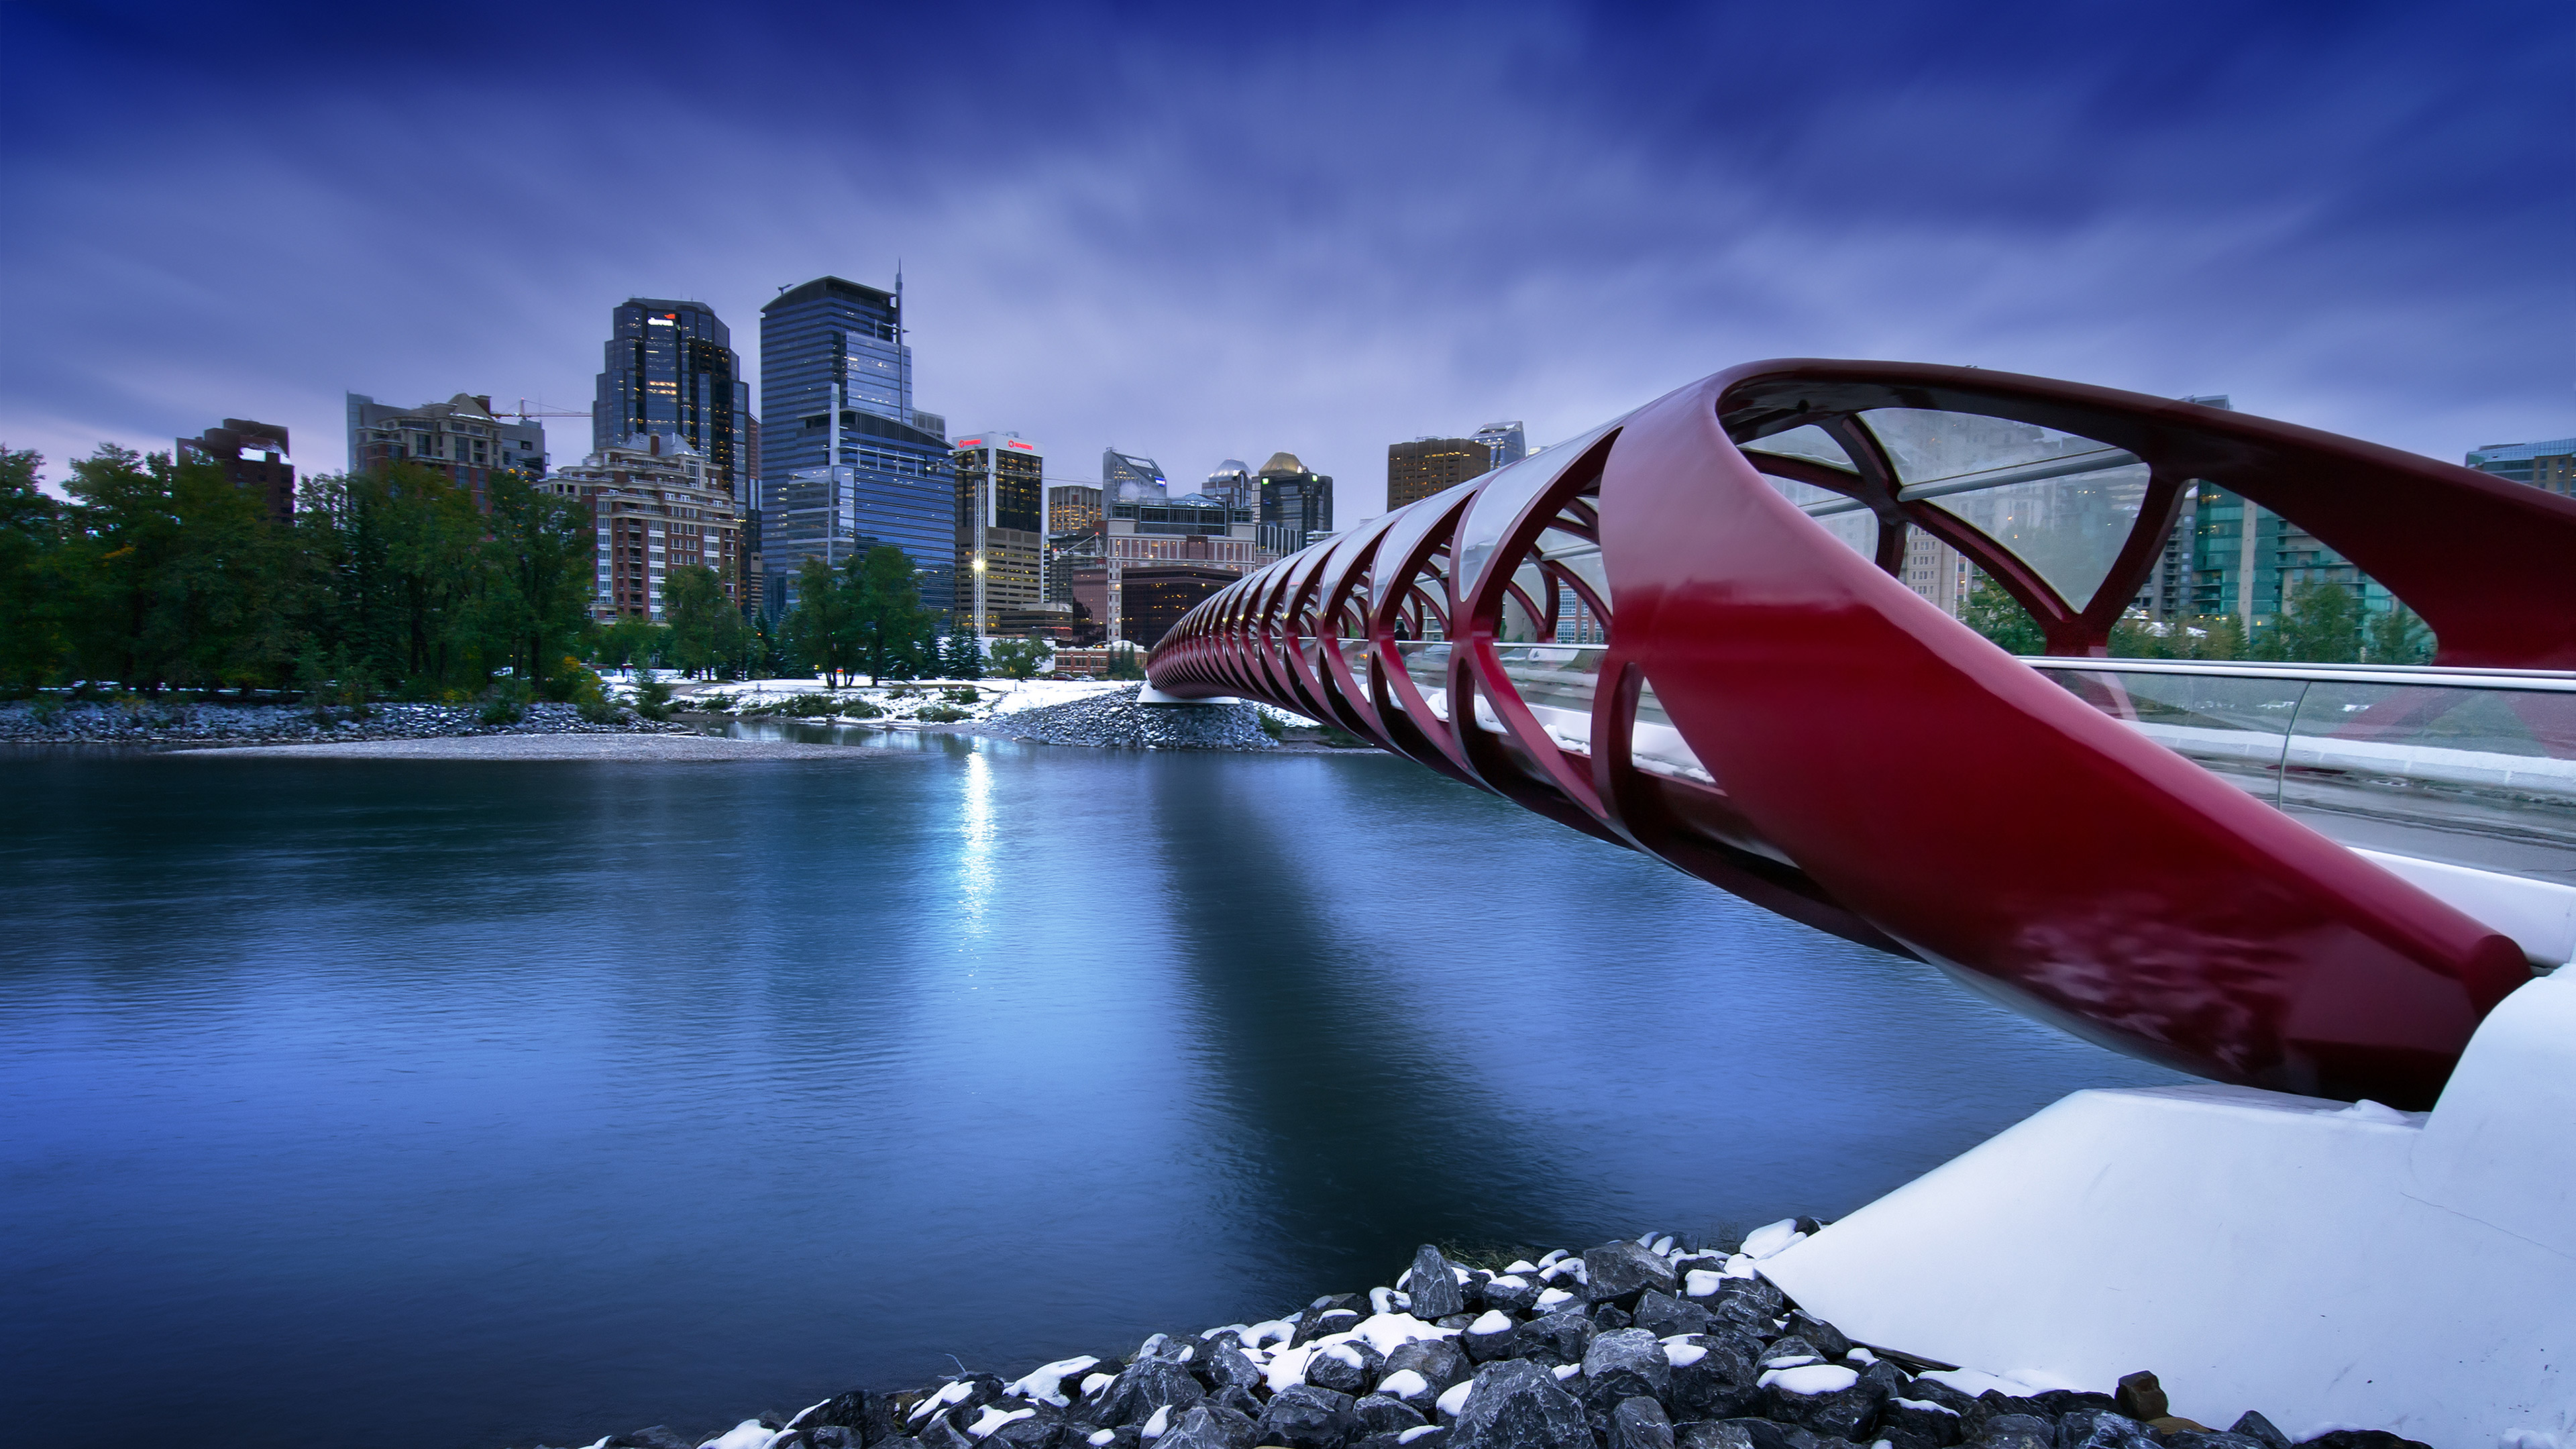 Peace bridge hd world 4k wallpapers images backgrounds photos and pictures - Peace hd wallpapers free download ...